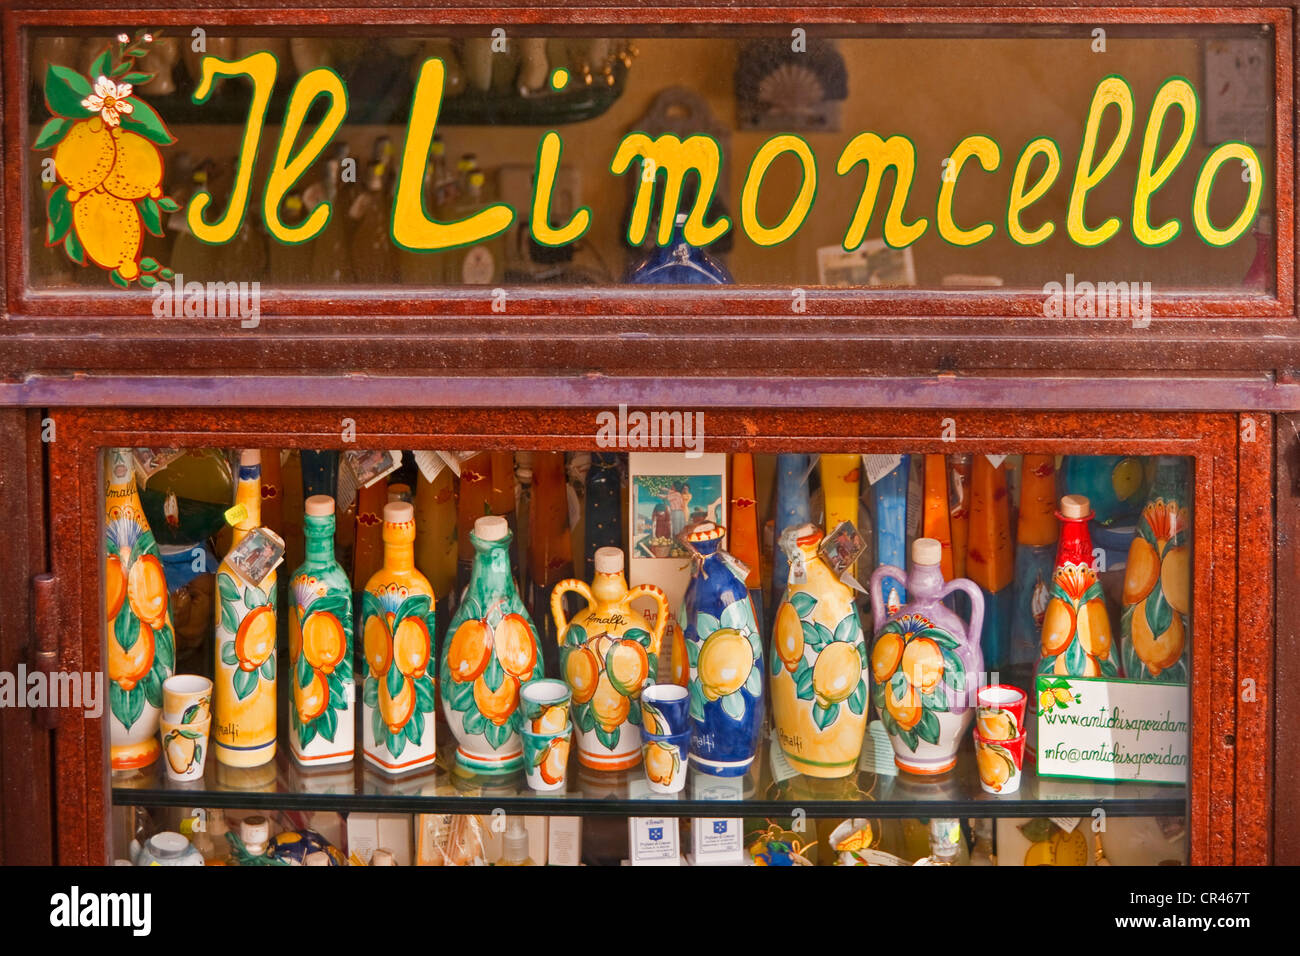 Italy: Window of shop specializing in Limoncello, locally made lemon liqueur, in village of Amalfi on Amalfi Coast - Stock Image